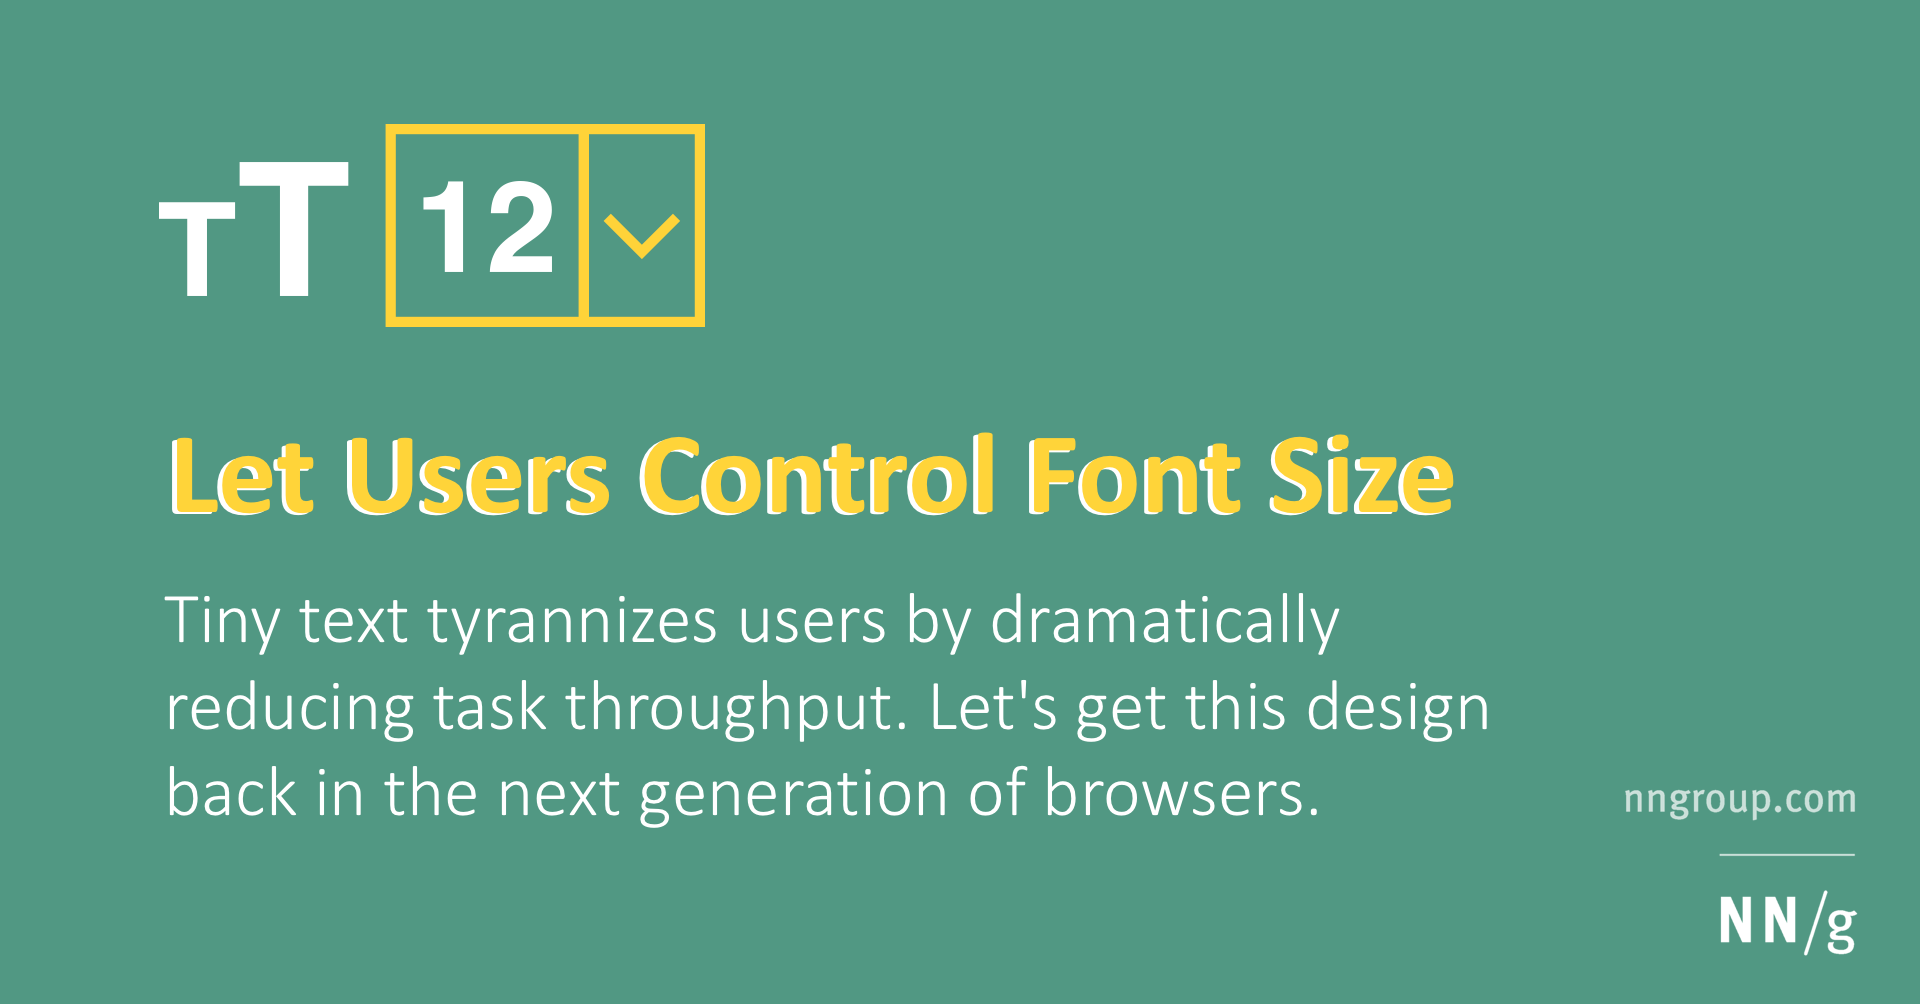 Let Users Control Font Size